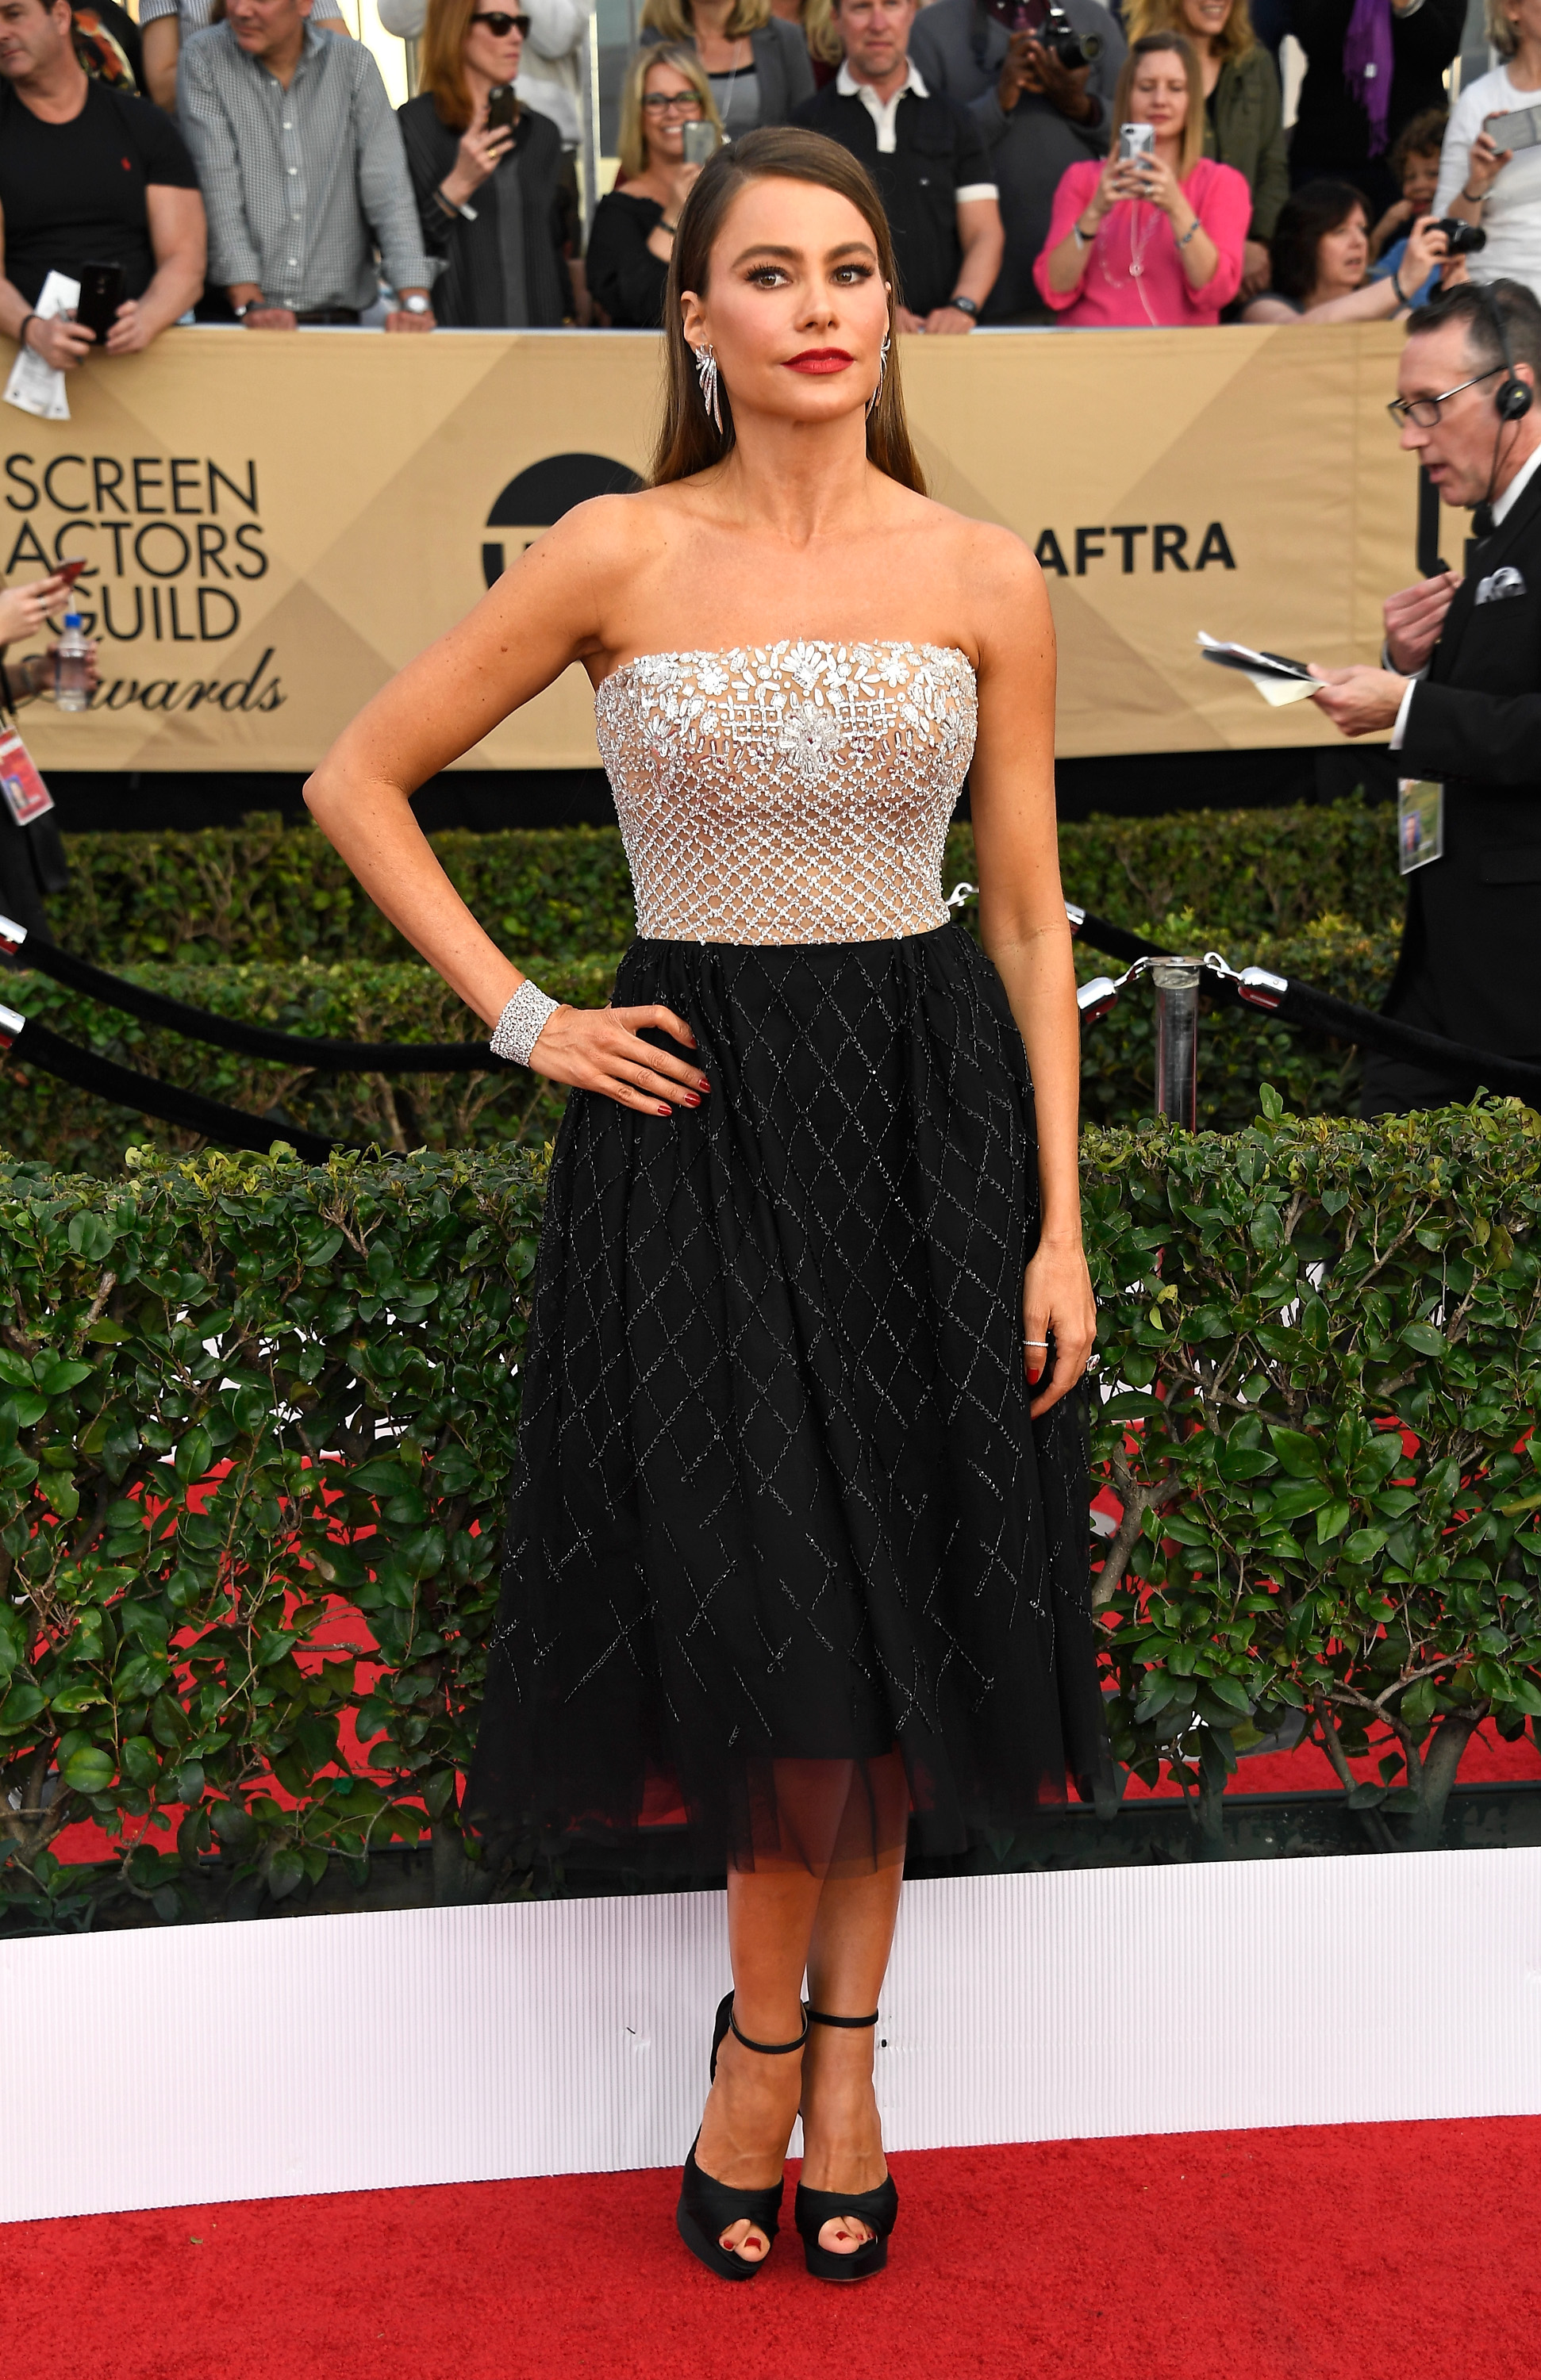 Sophia Vergara SAG awards vestido